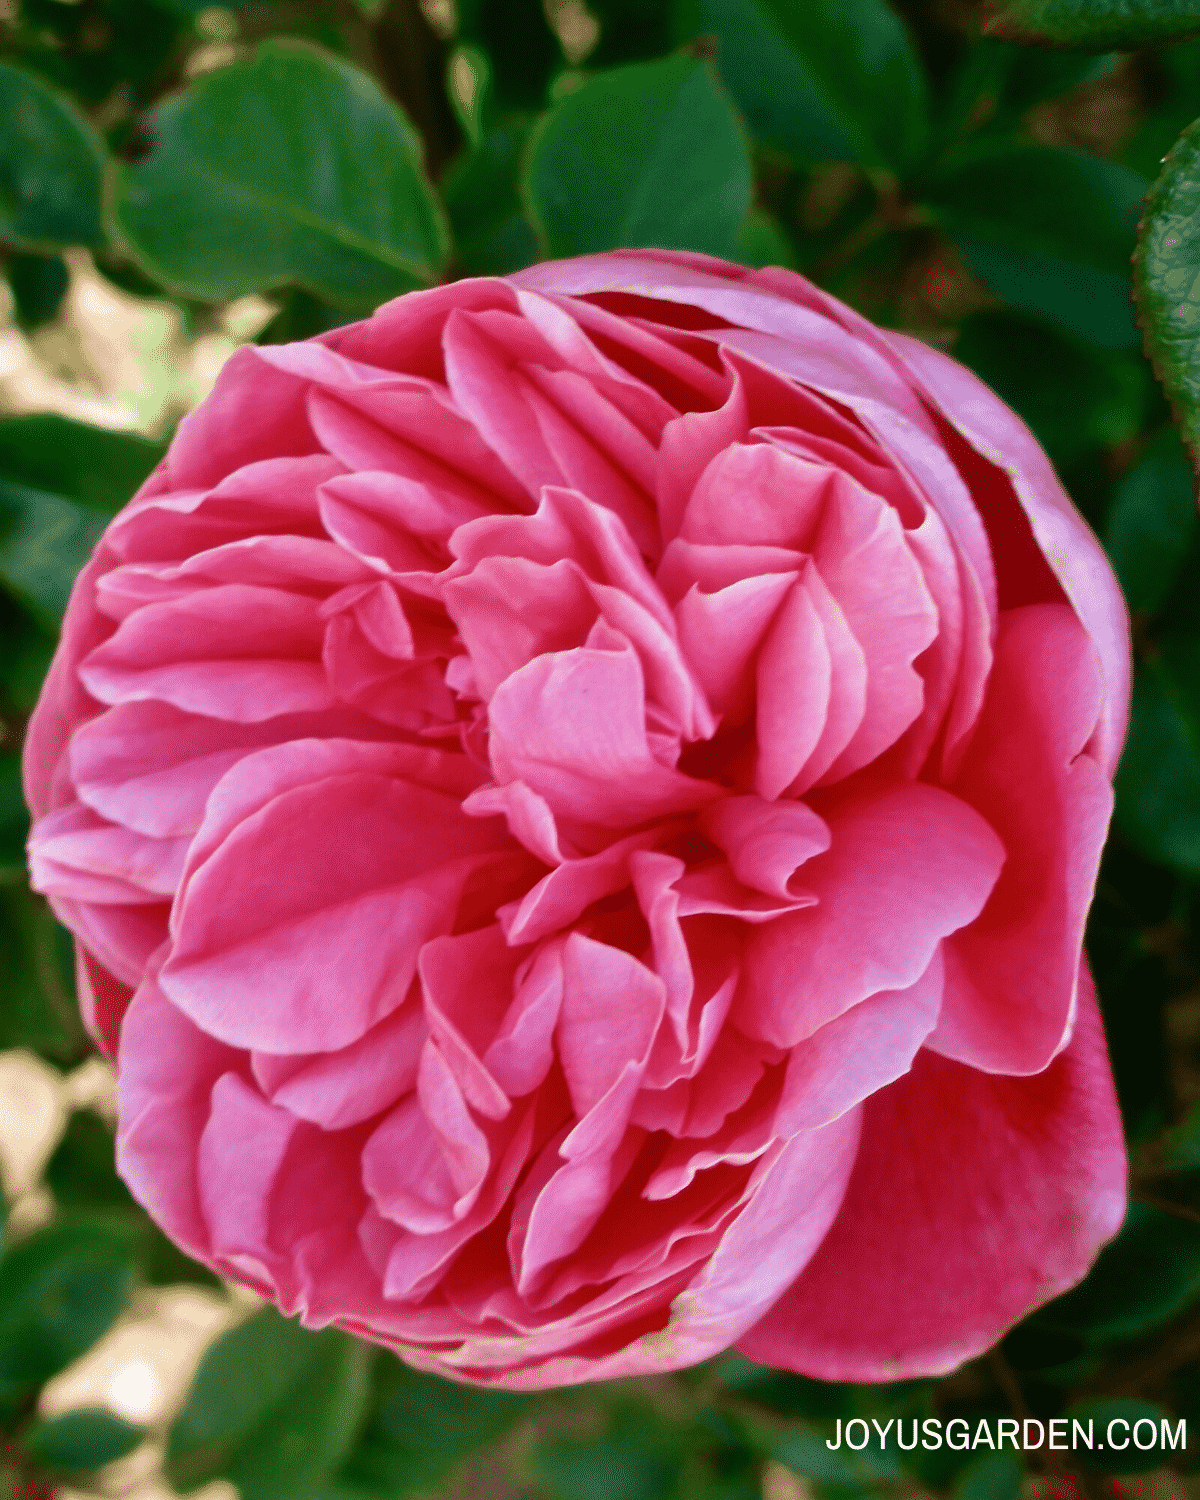 close up of one deep pink rose flower